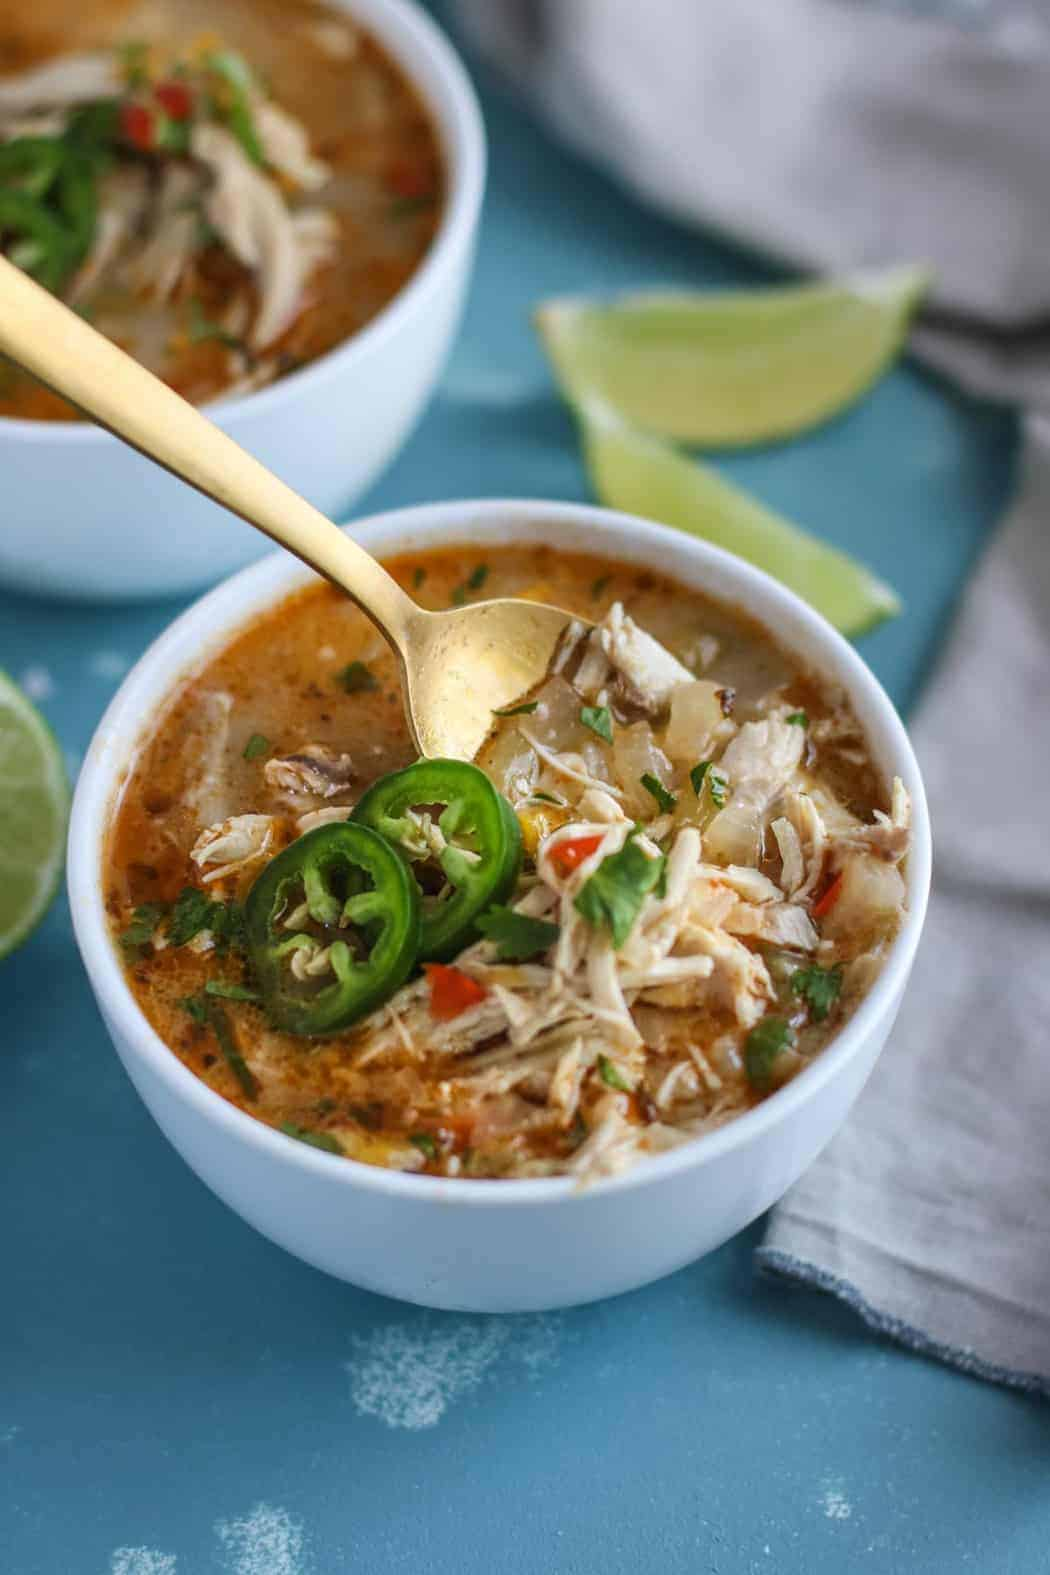 Slow Cooker White Chicken Chili | 30 Whole30 Soups, Stews & Chilis | healthy soup recipes | whole30 meal ideas | whole30 recipes | whole30 chili recipes || The Real Food Dietitians #whole30soups #whole30recipe #whole30meals